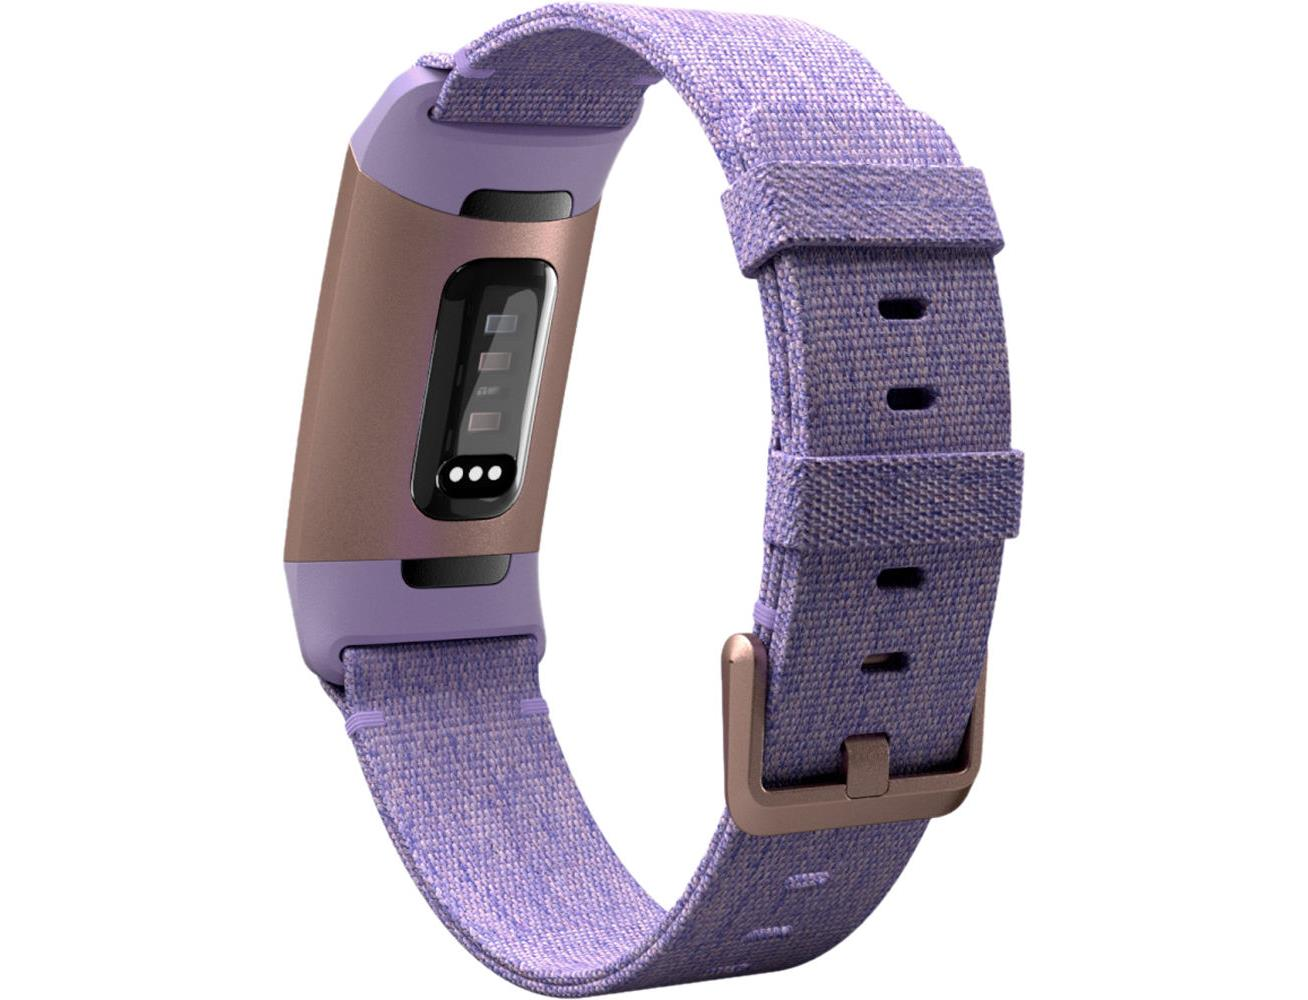 Fitbit Charge 3 Special Edition Advanced Fitness Tracker - Lavender